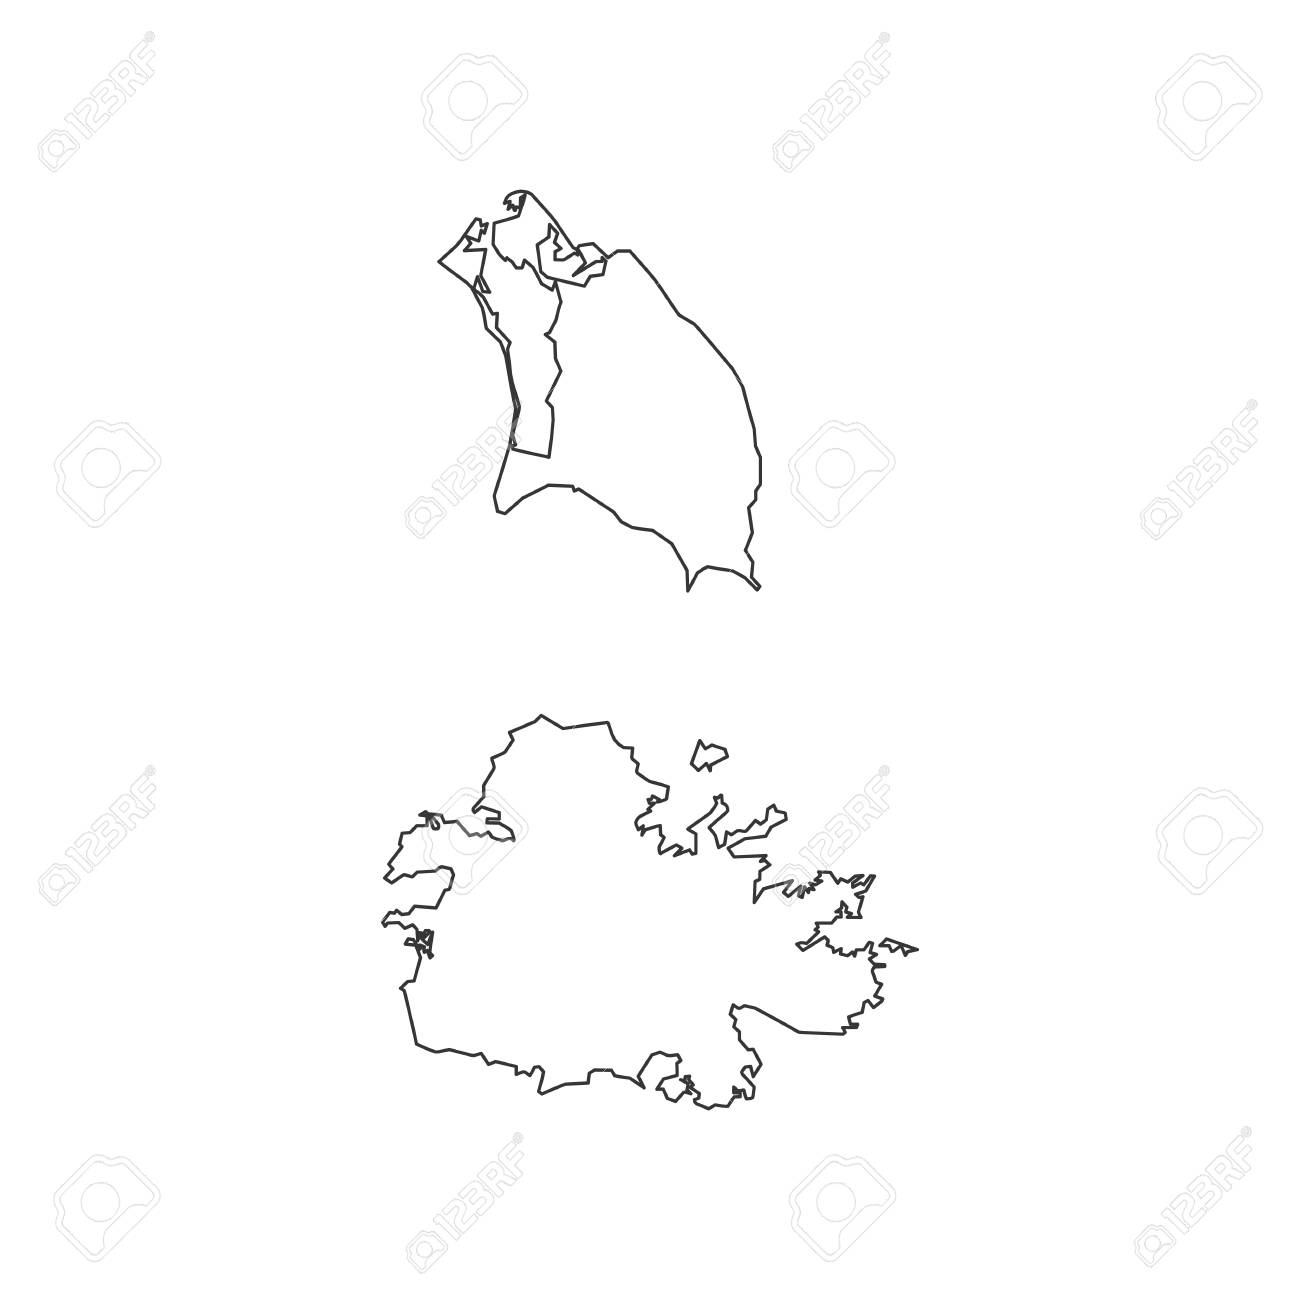 Antigua and Barbuda map on the white background. Vector illustration